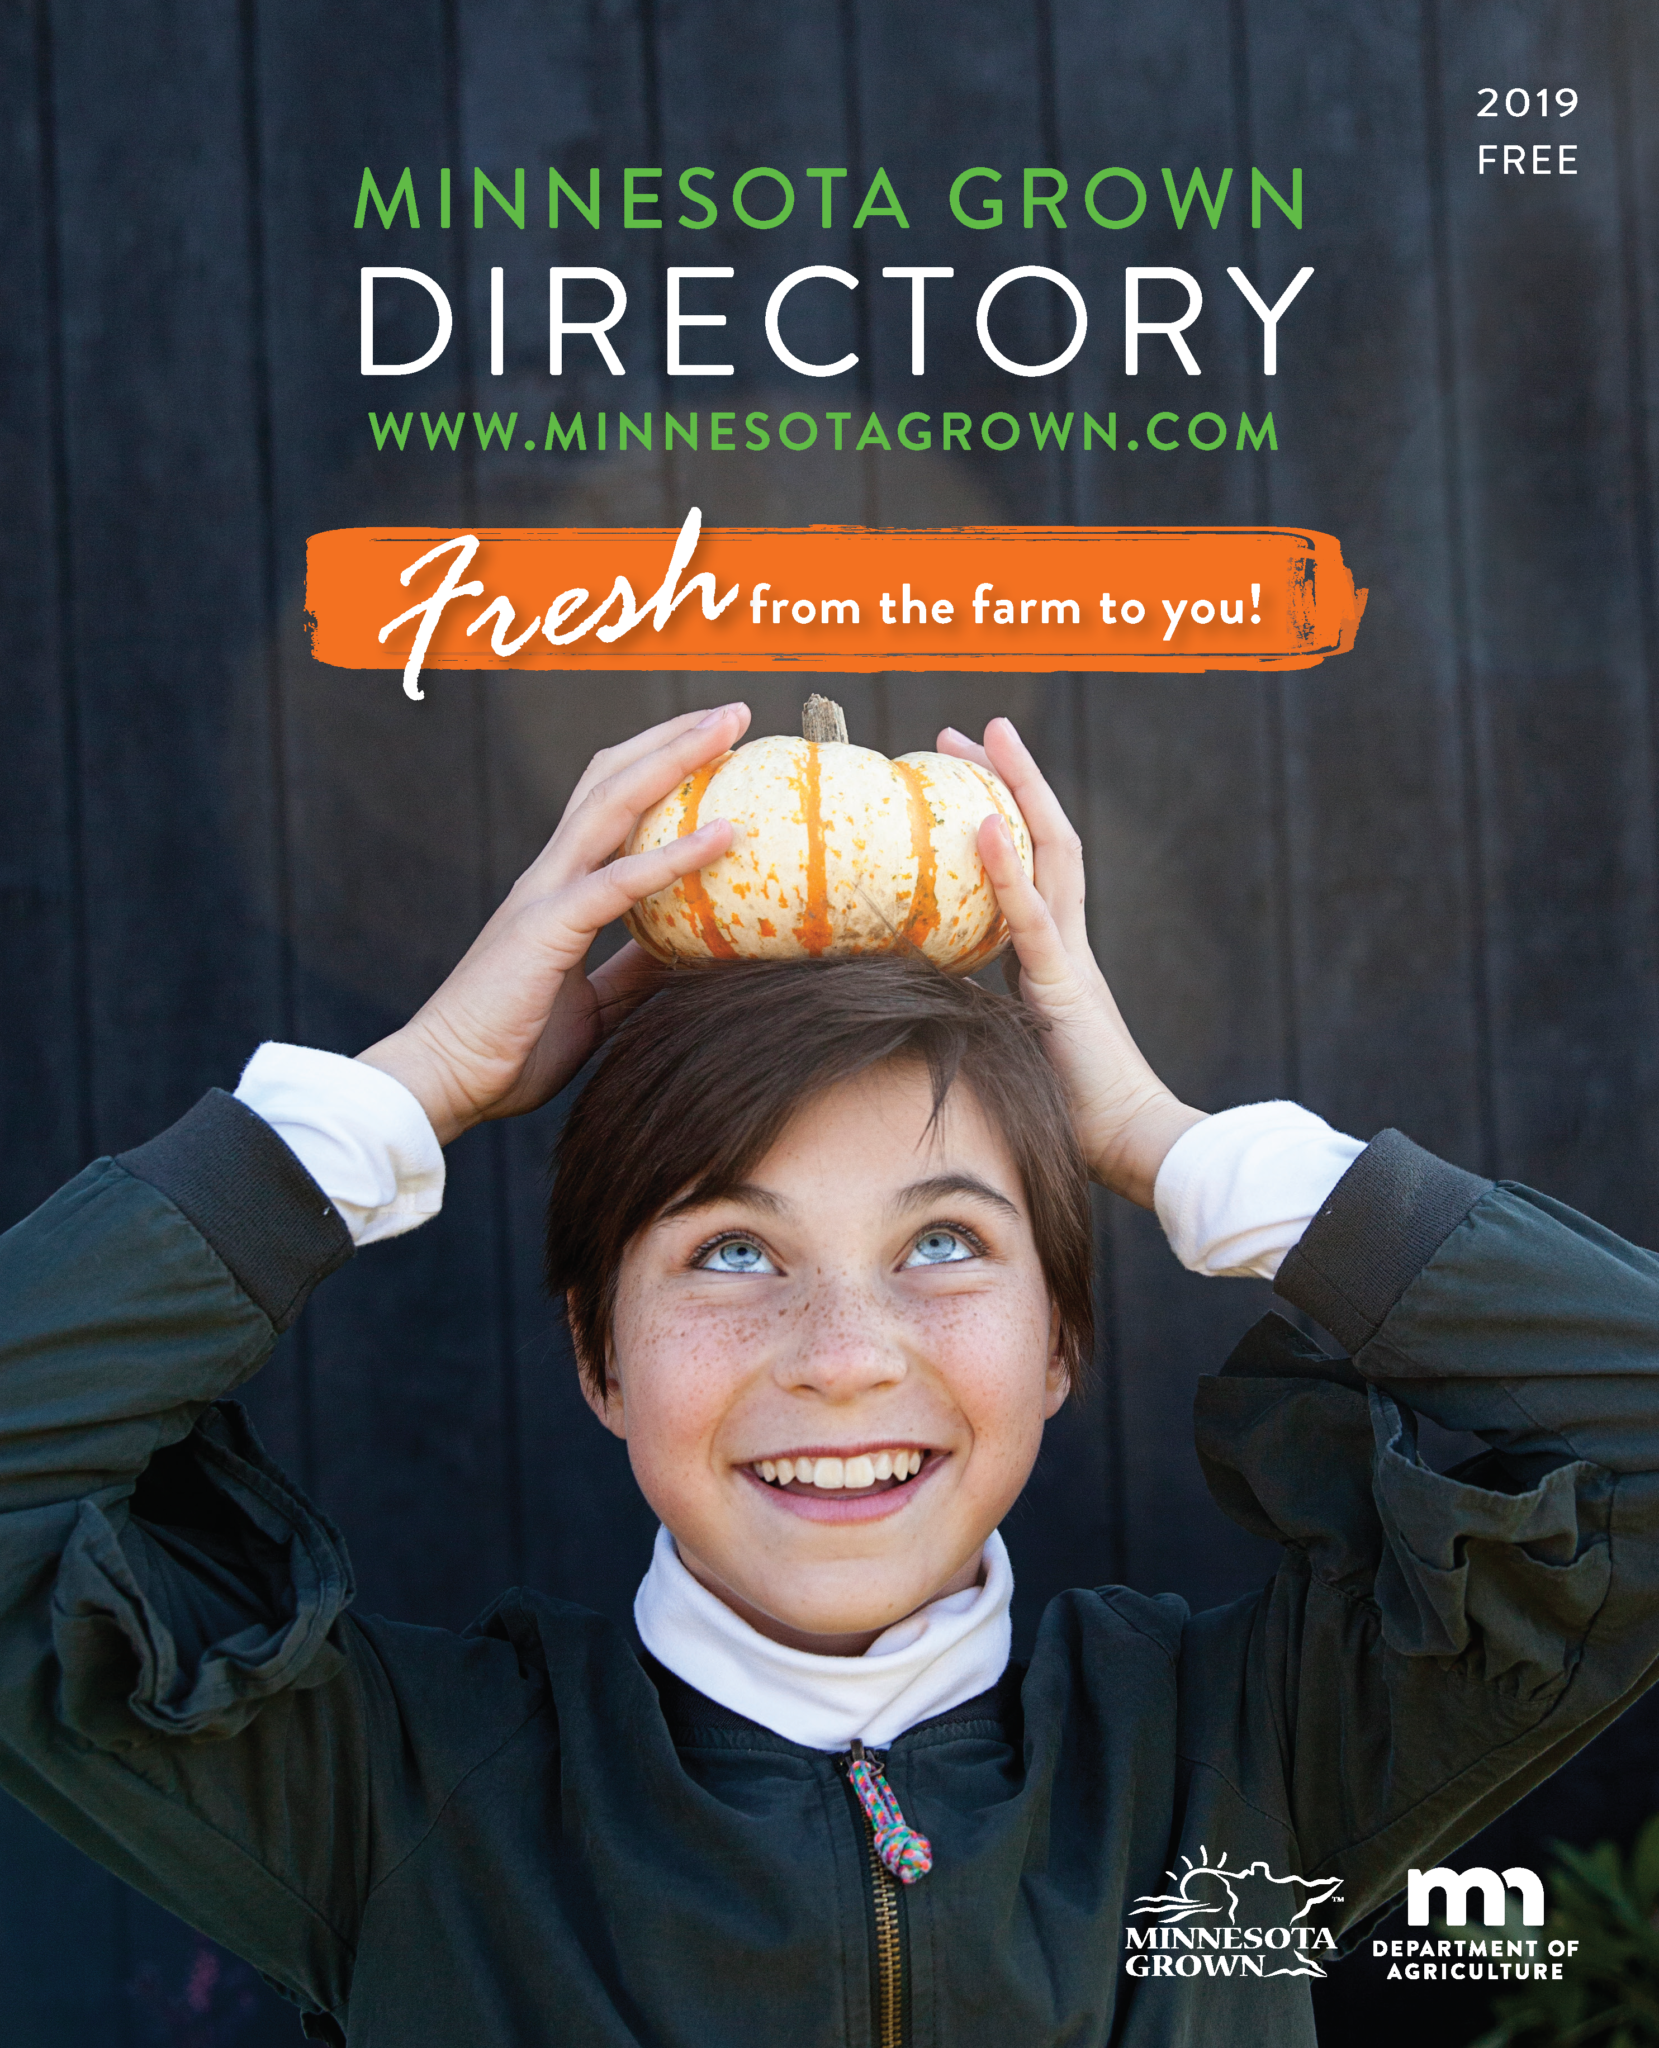 Minnesota Grown Directory cover image showing a girl with a small gourd on her head